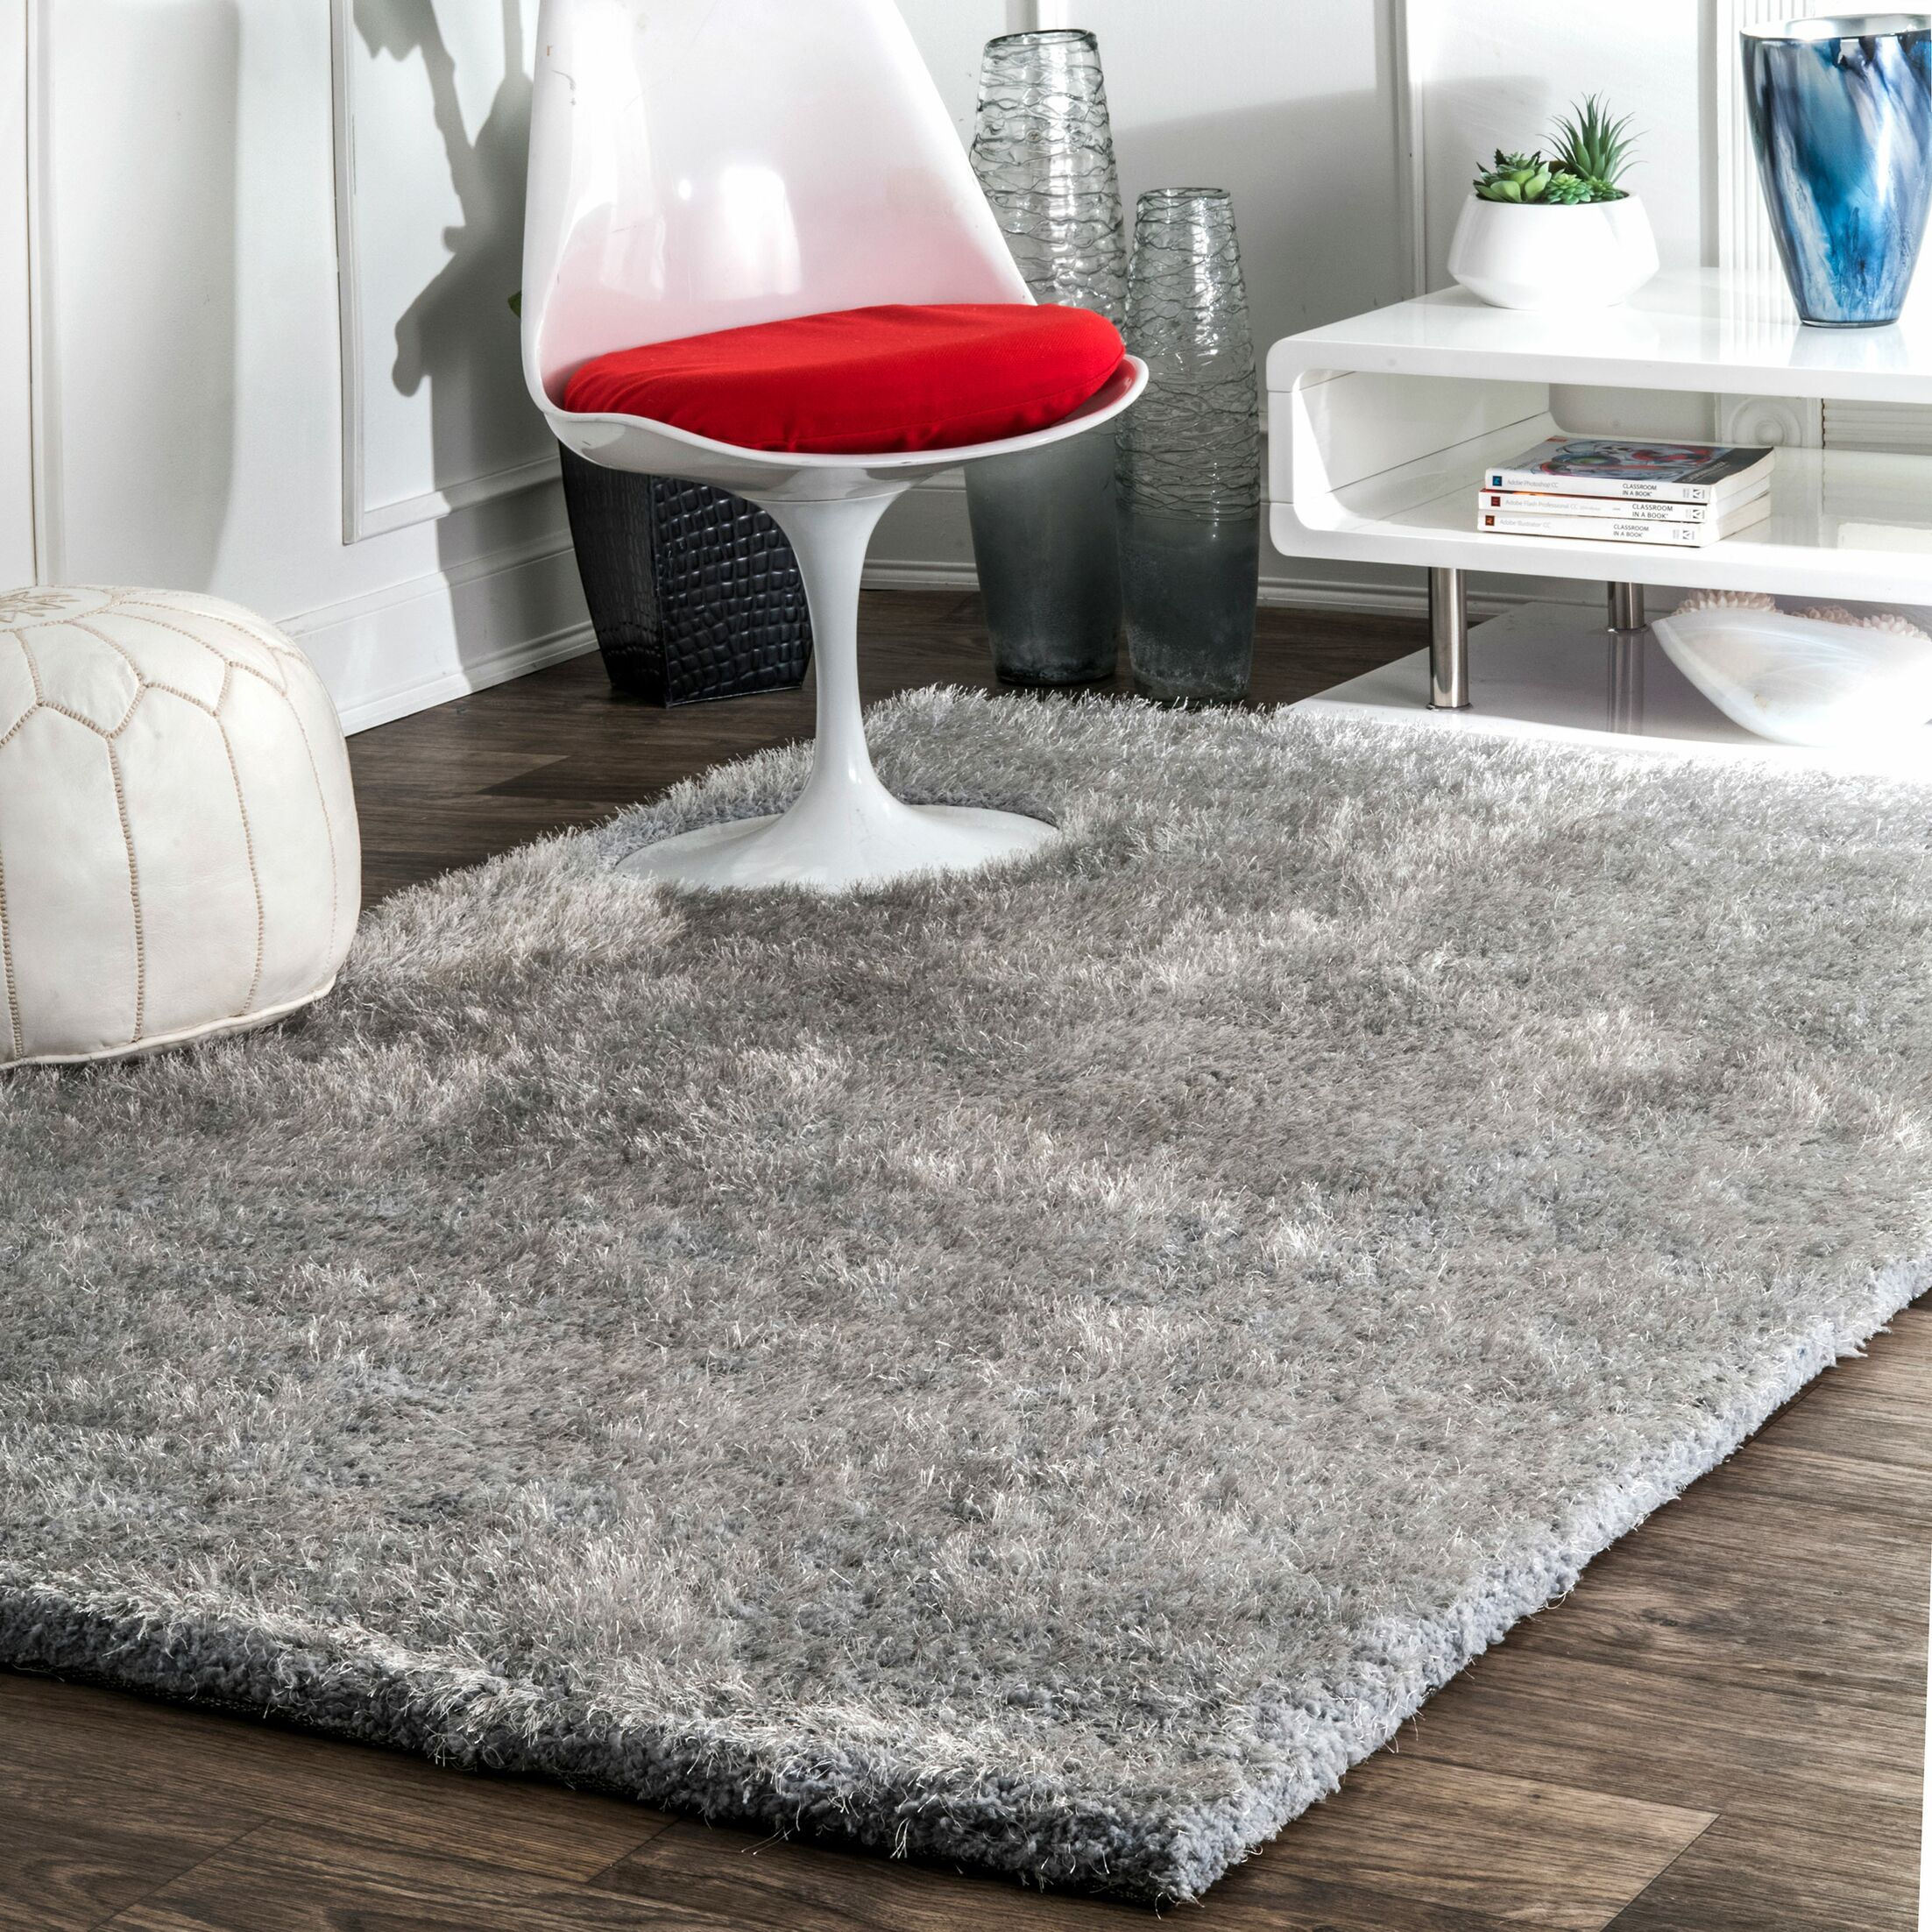 Shadwick Hand Tufted Light Gray Area Rug Rug Size: Rectangle 8'6